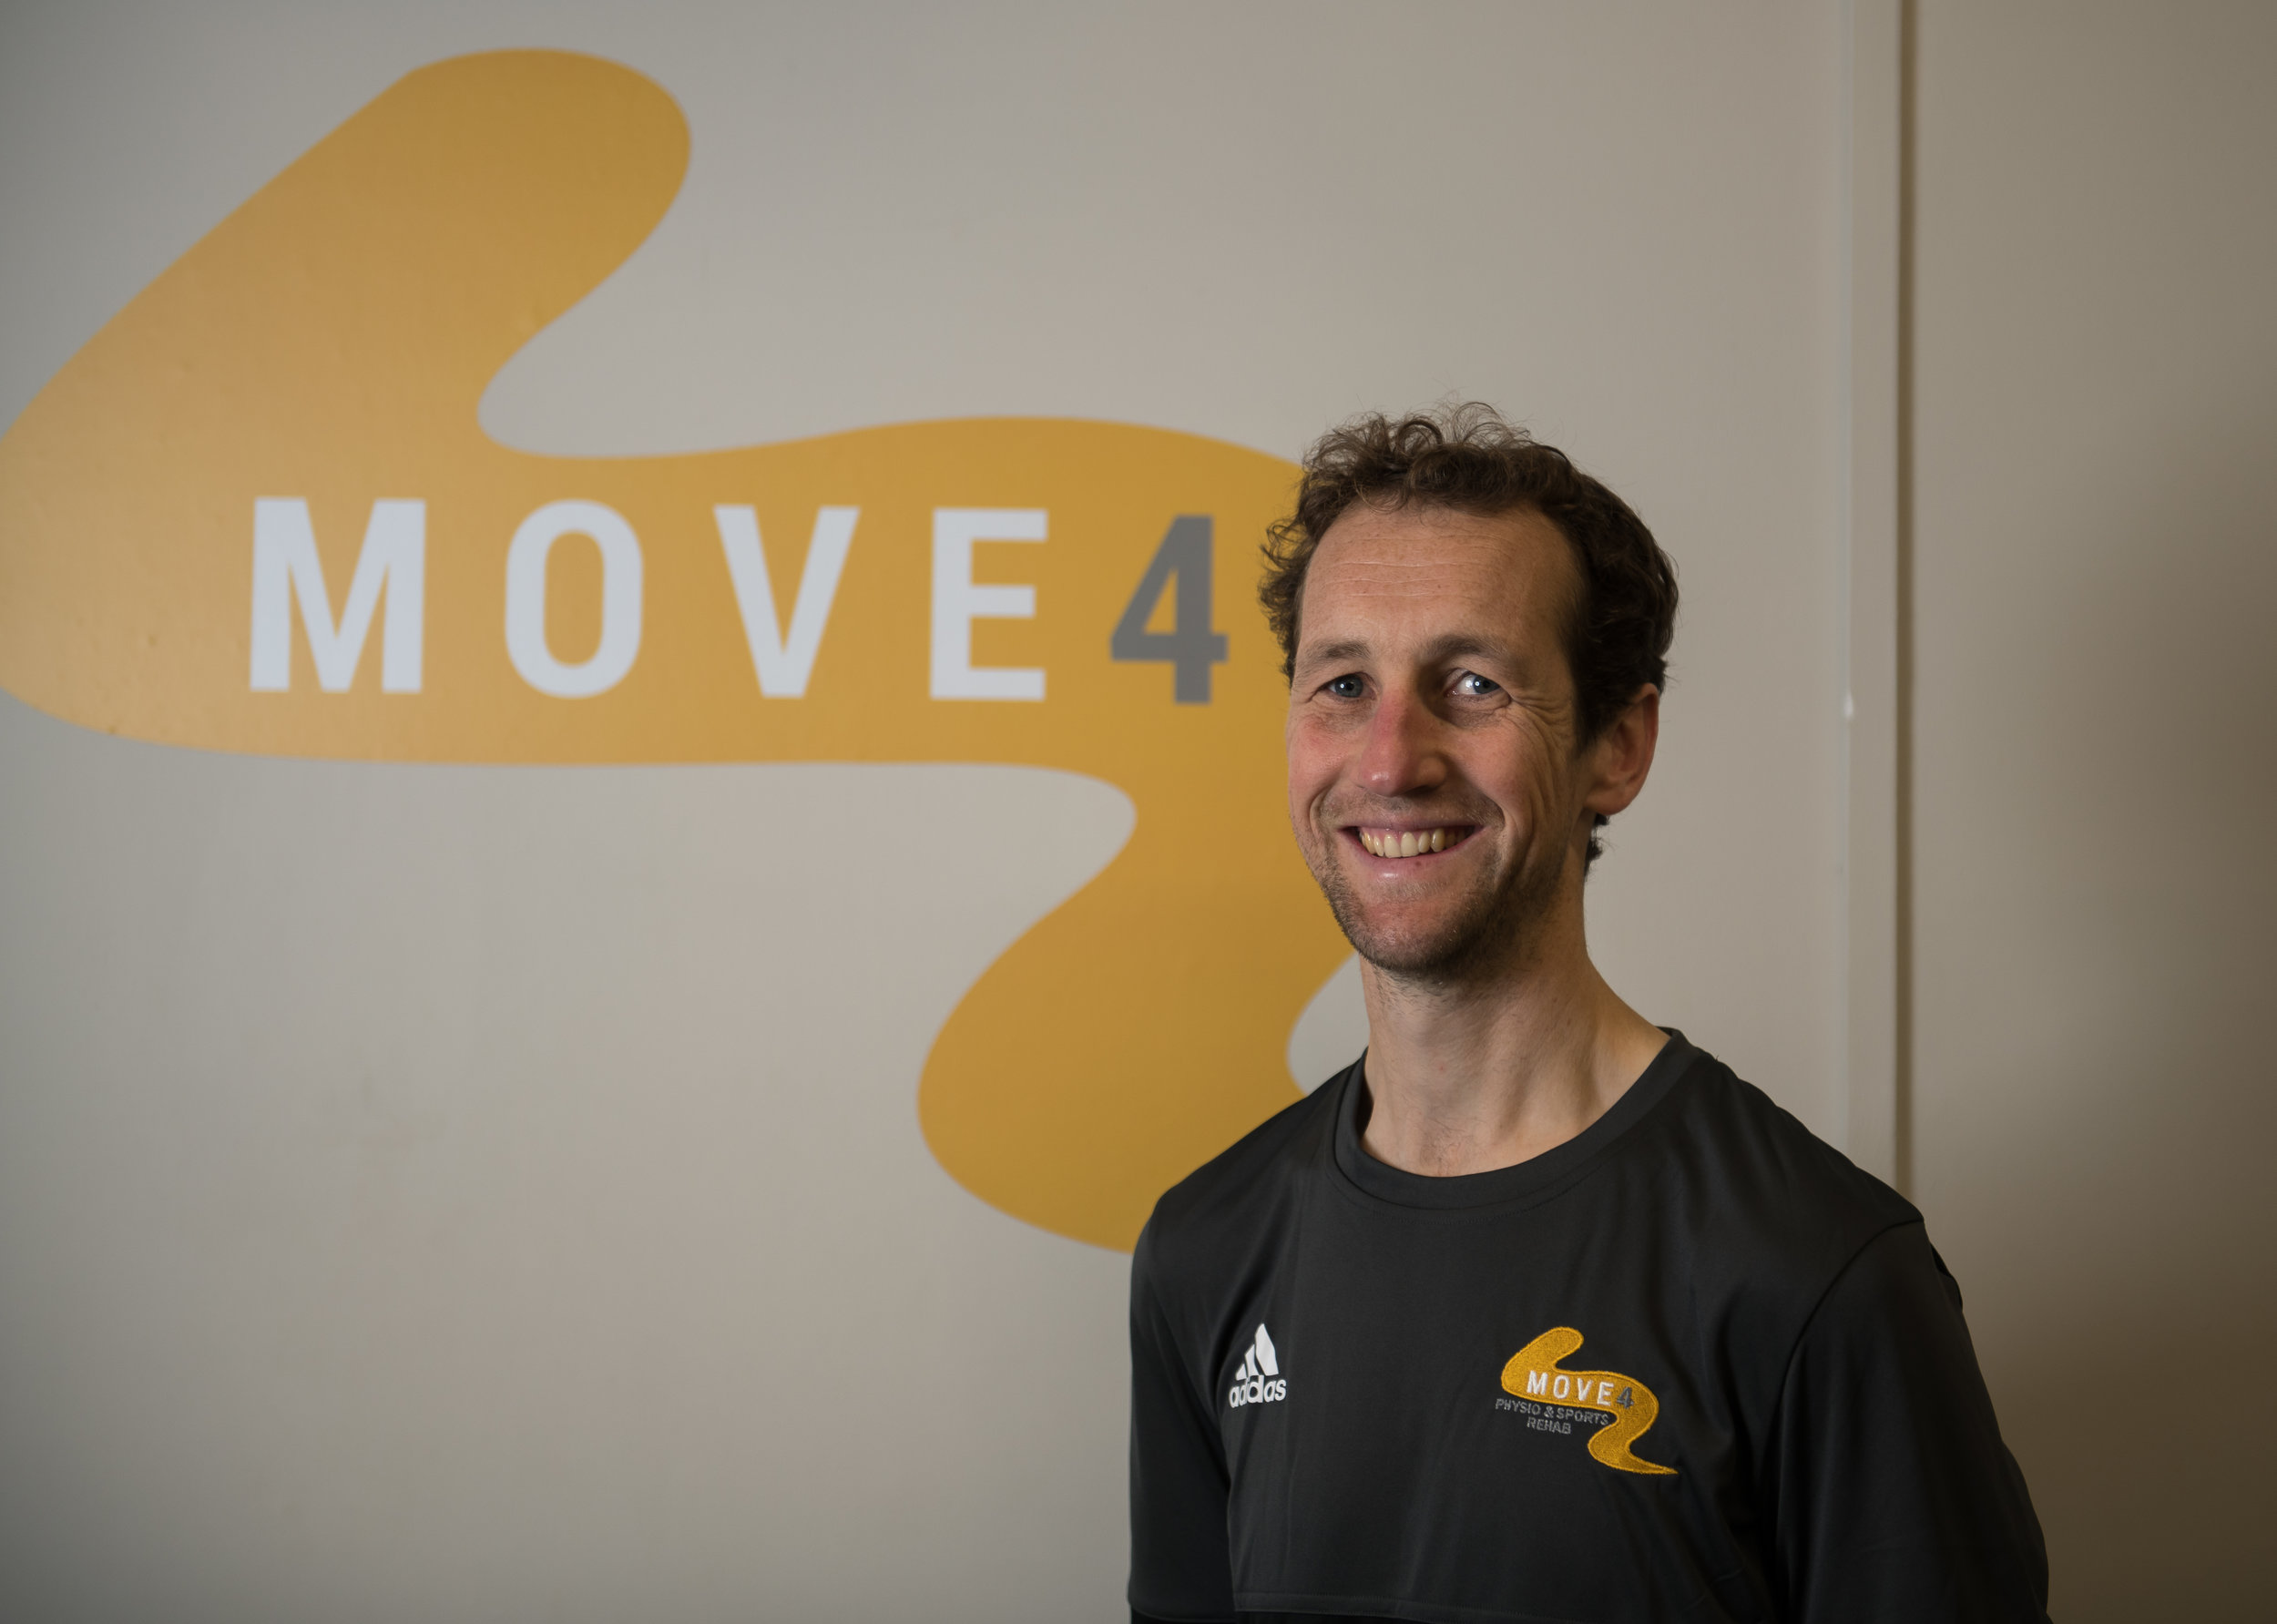 Nathan Allwork - BSc (Hons) MCSPSenior Physiotherapist at Northampton Saints RFCBath Rugby Physiotherapist (2005-2012)Specialist in injury prevention, biomechanics and functional anatomy